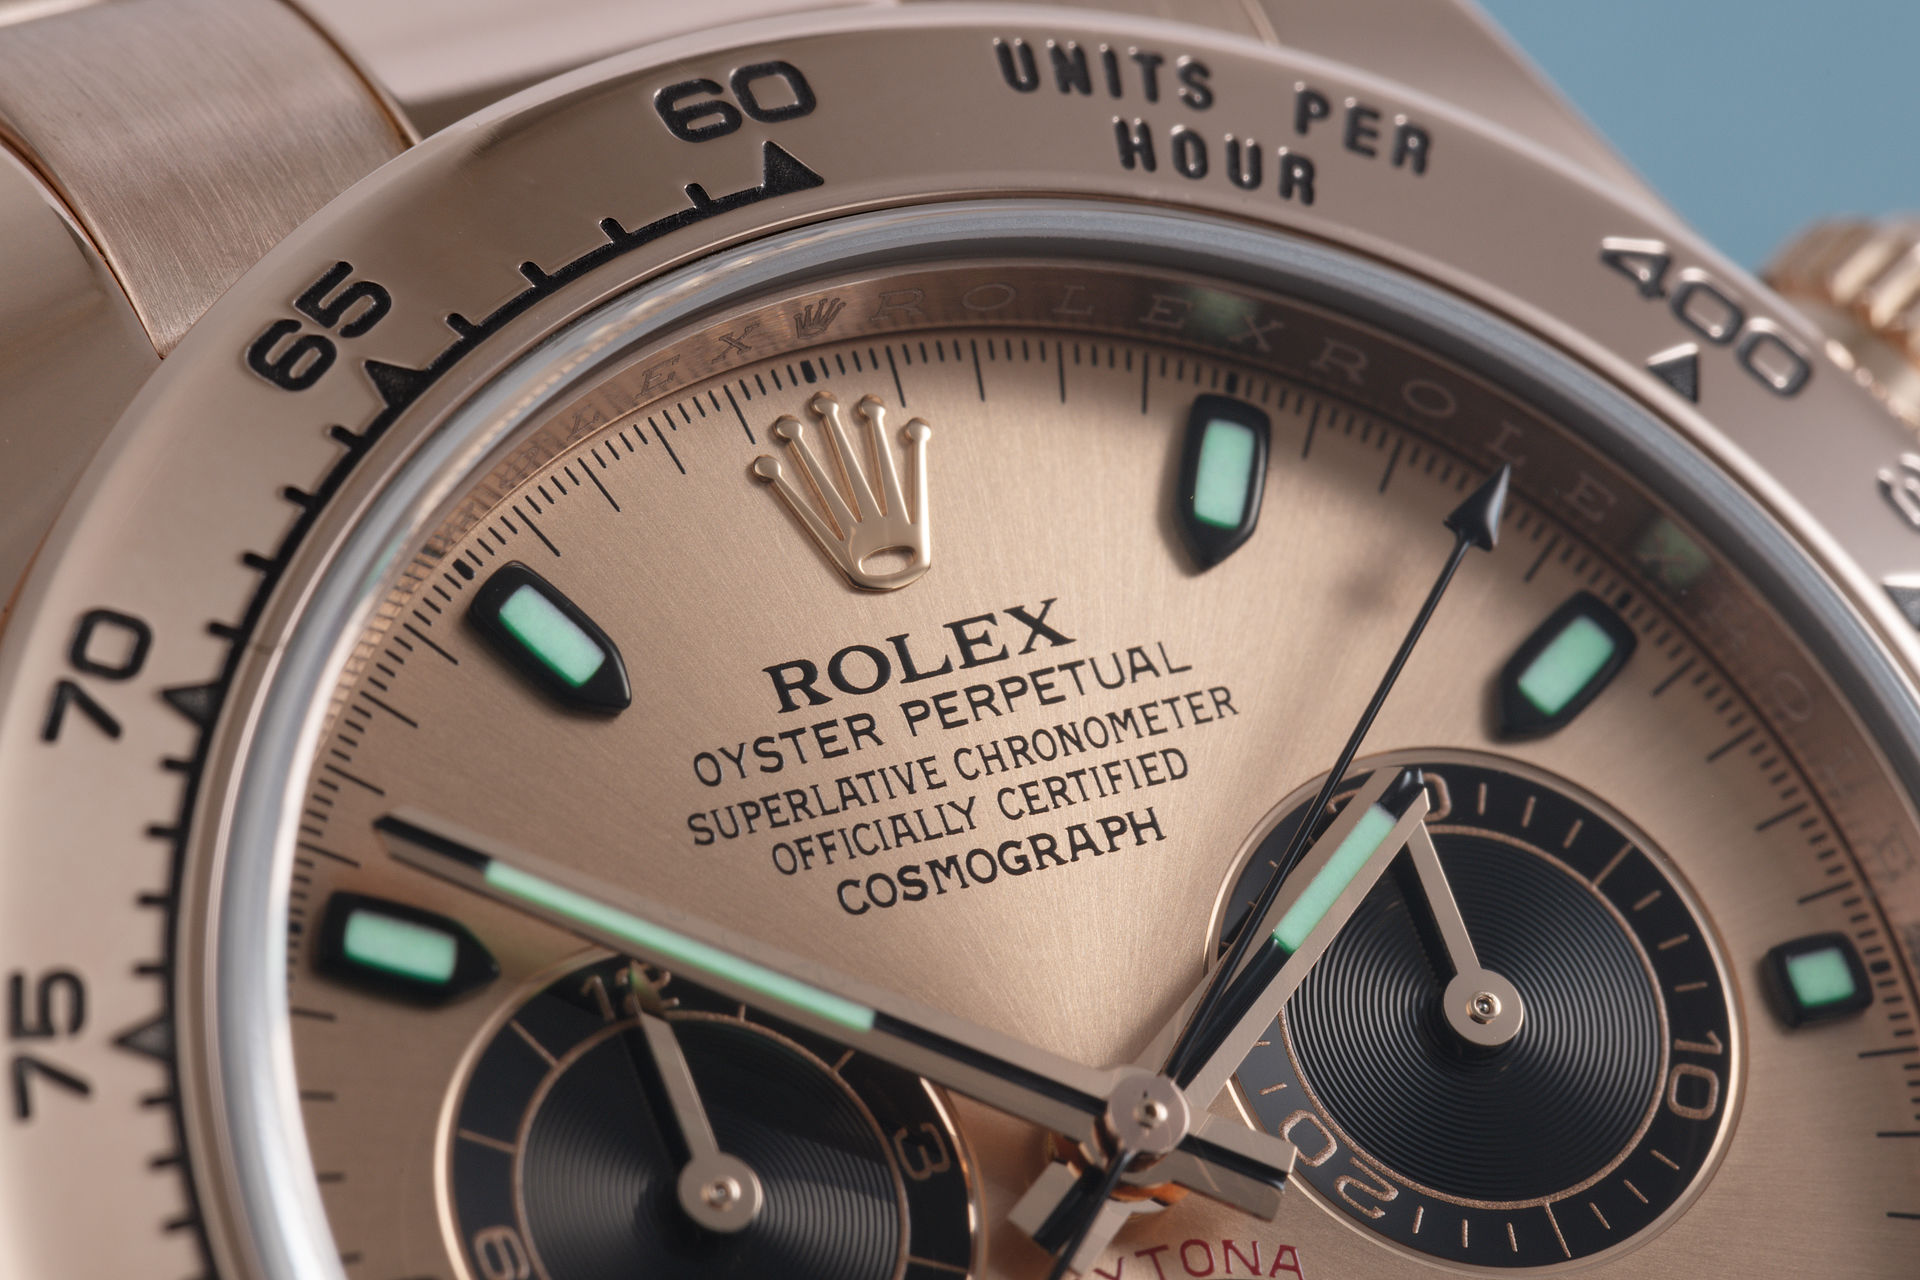 ref 116505 | Full Set '18ct Rose Gold' | Rolex Cosmograph Daytona